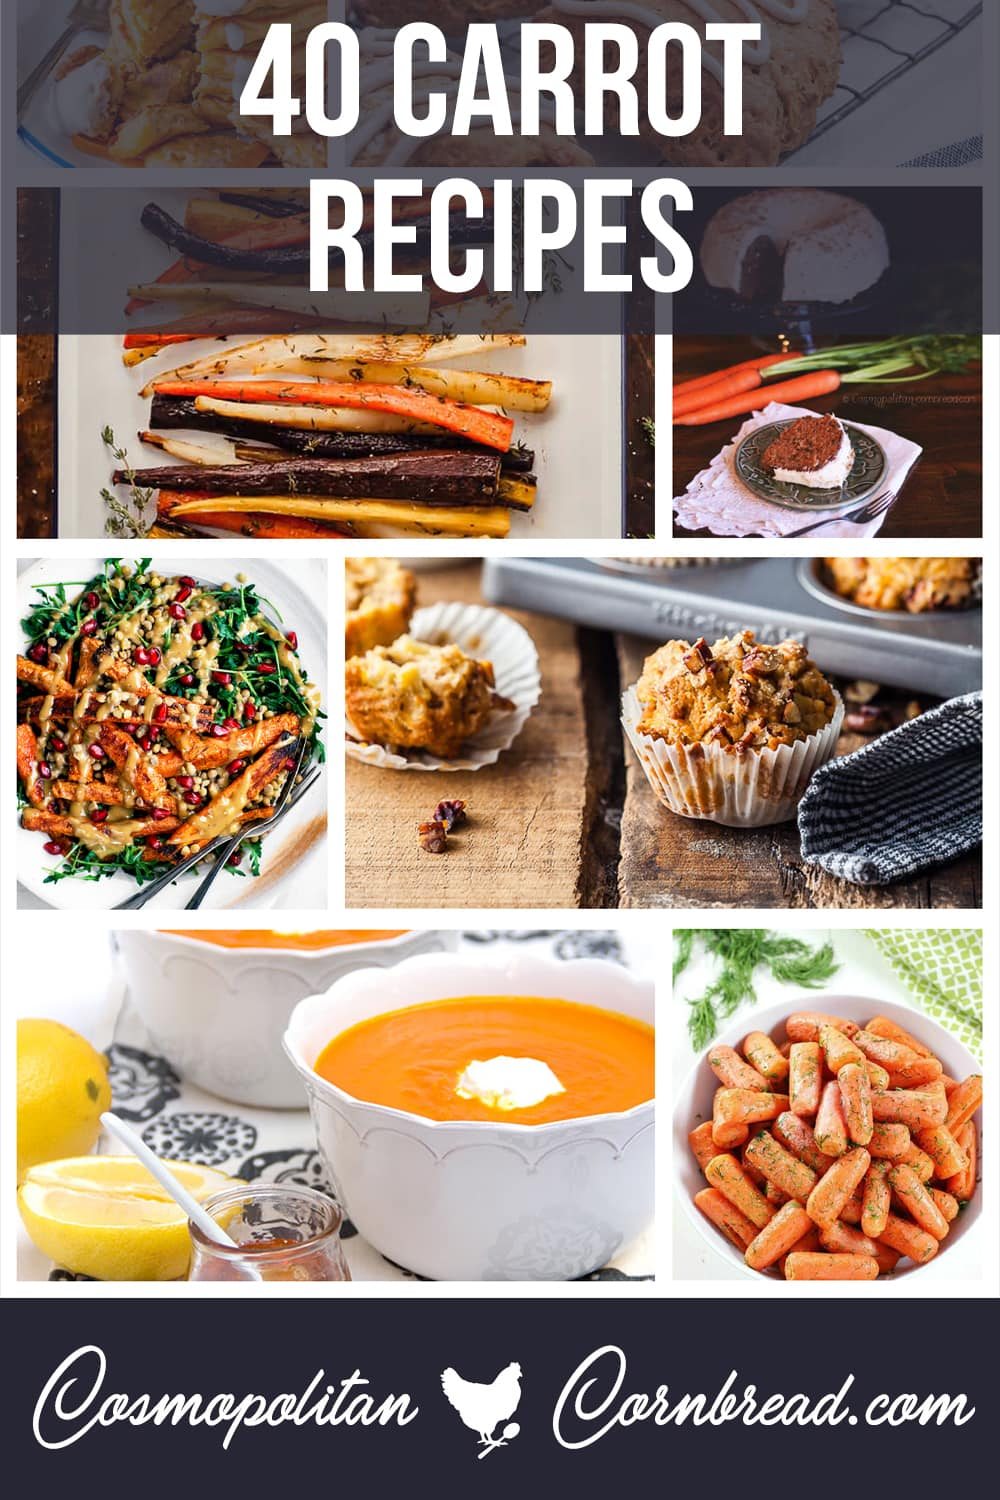 Carrots are equally tasty whether they are in a sweet dessert or a savory dish. Use them every way you can think of with 40 great carrot recipes.